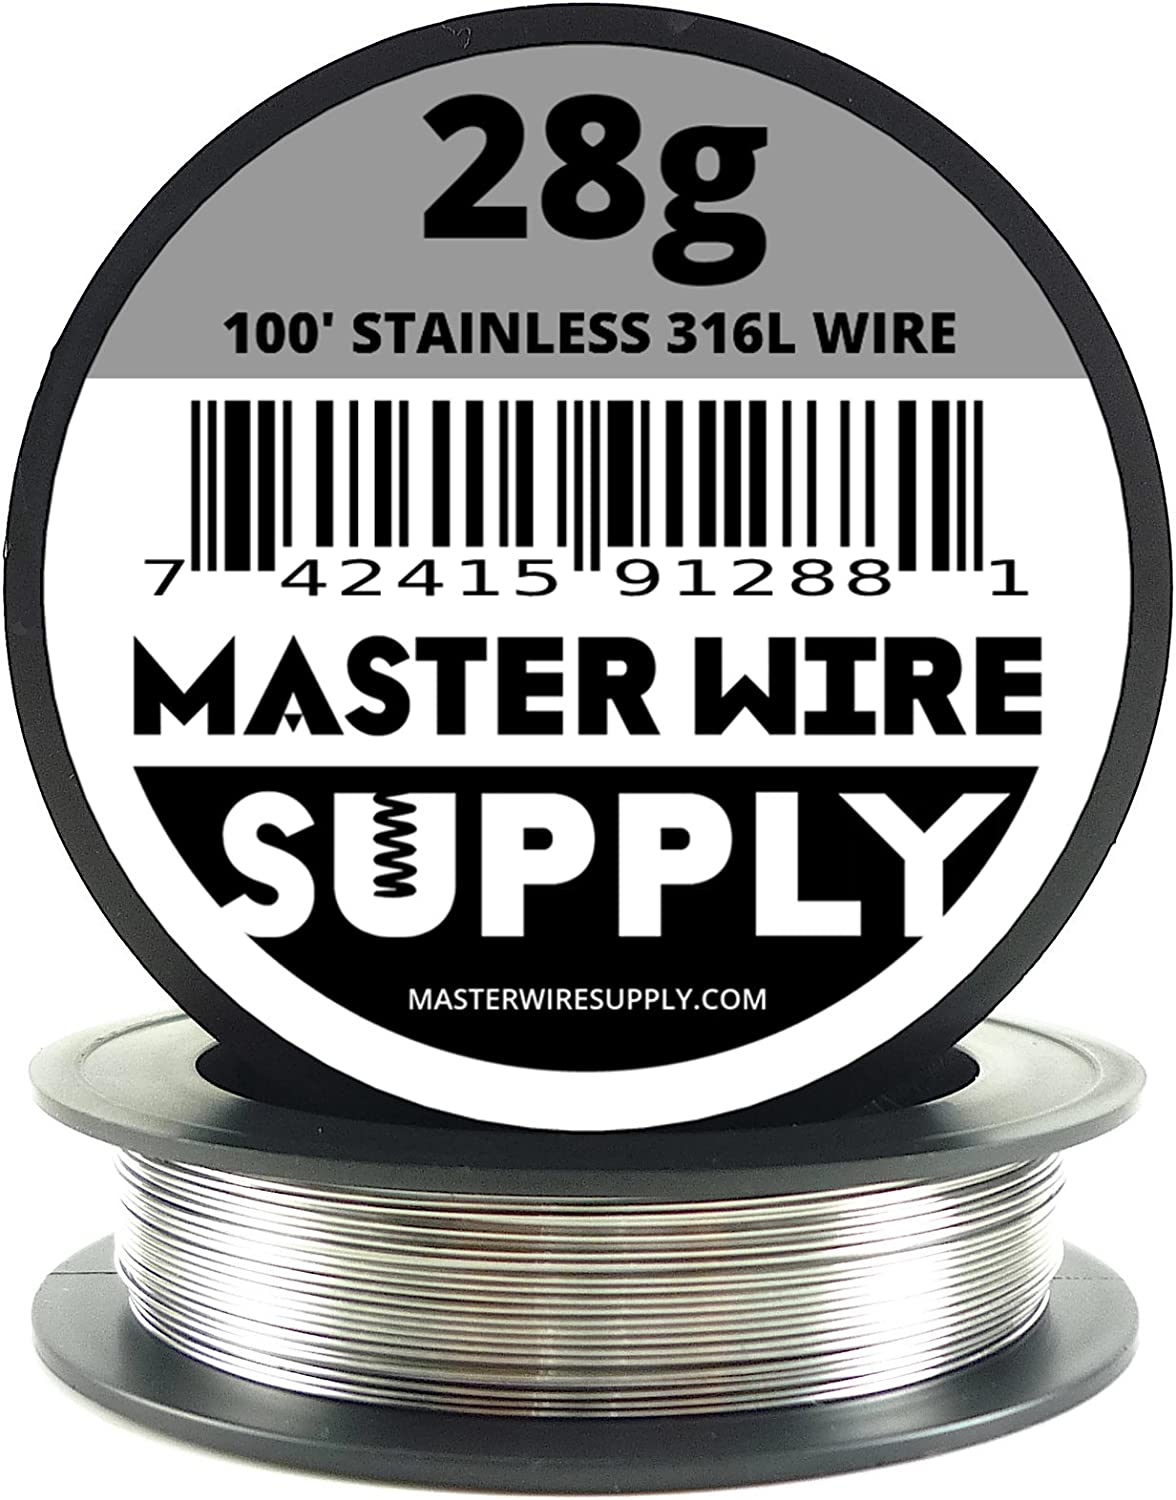 Stainless Steel 316L - 100' - 28 Gauge Wire